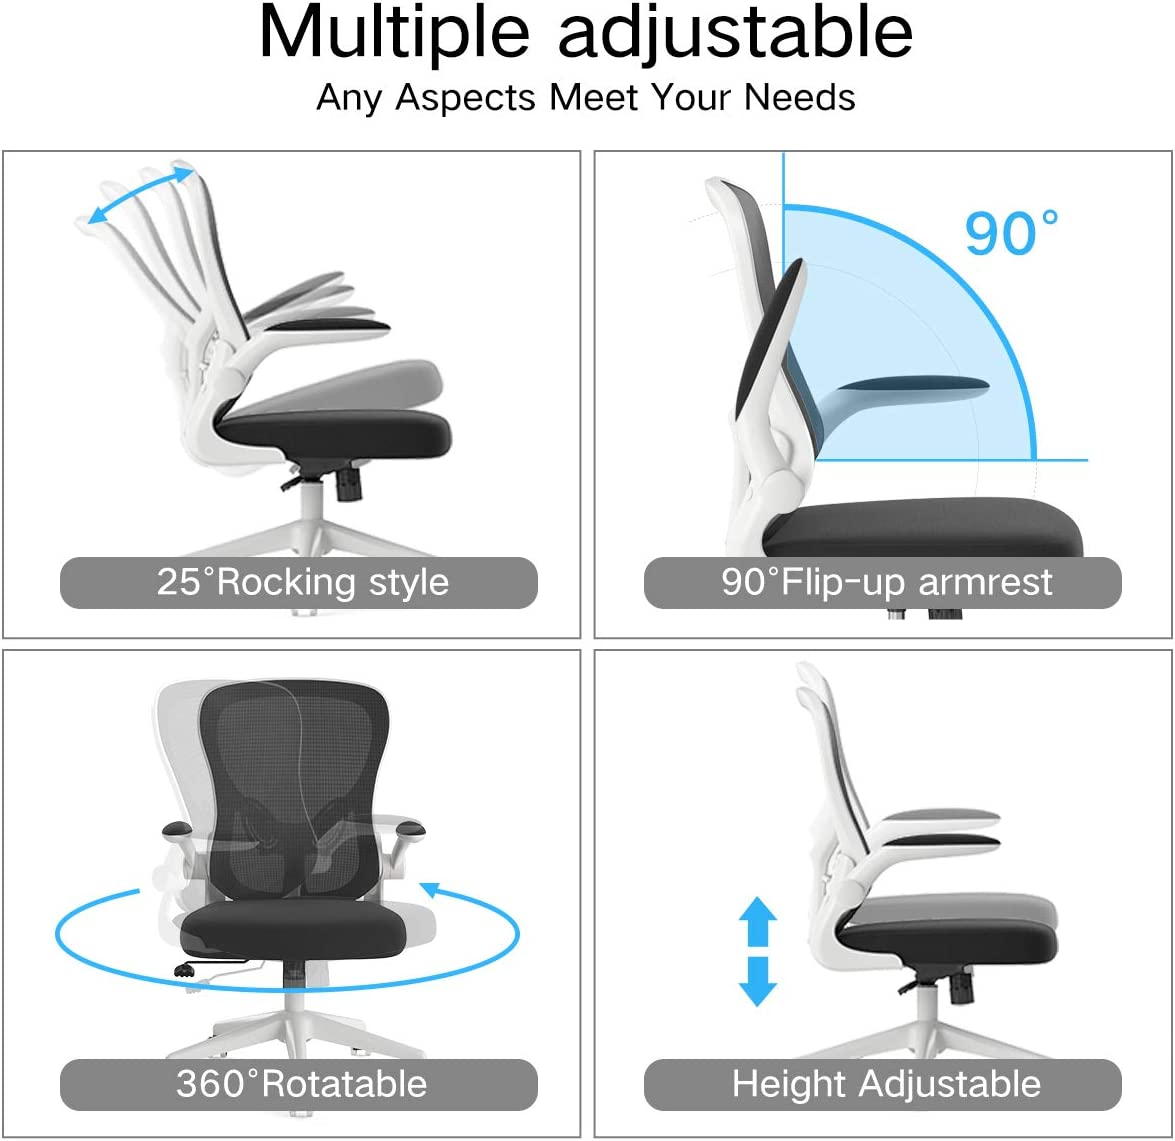 61z3XT99UnL. AC SL1200 - What is The Best Computer Chair For Long Hours Sitting? [Comfortable and Ergonomic] - ChairPicks